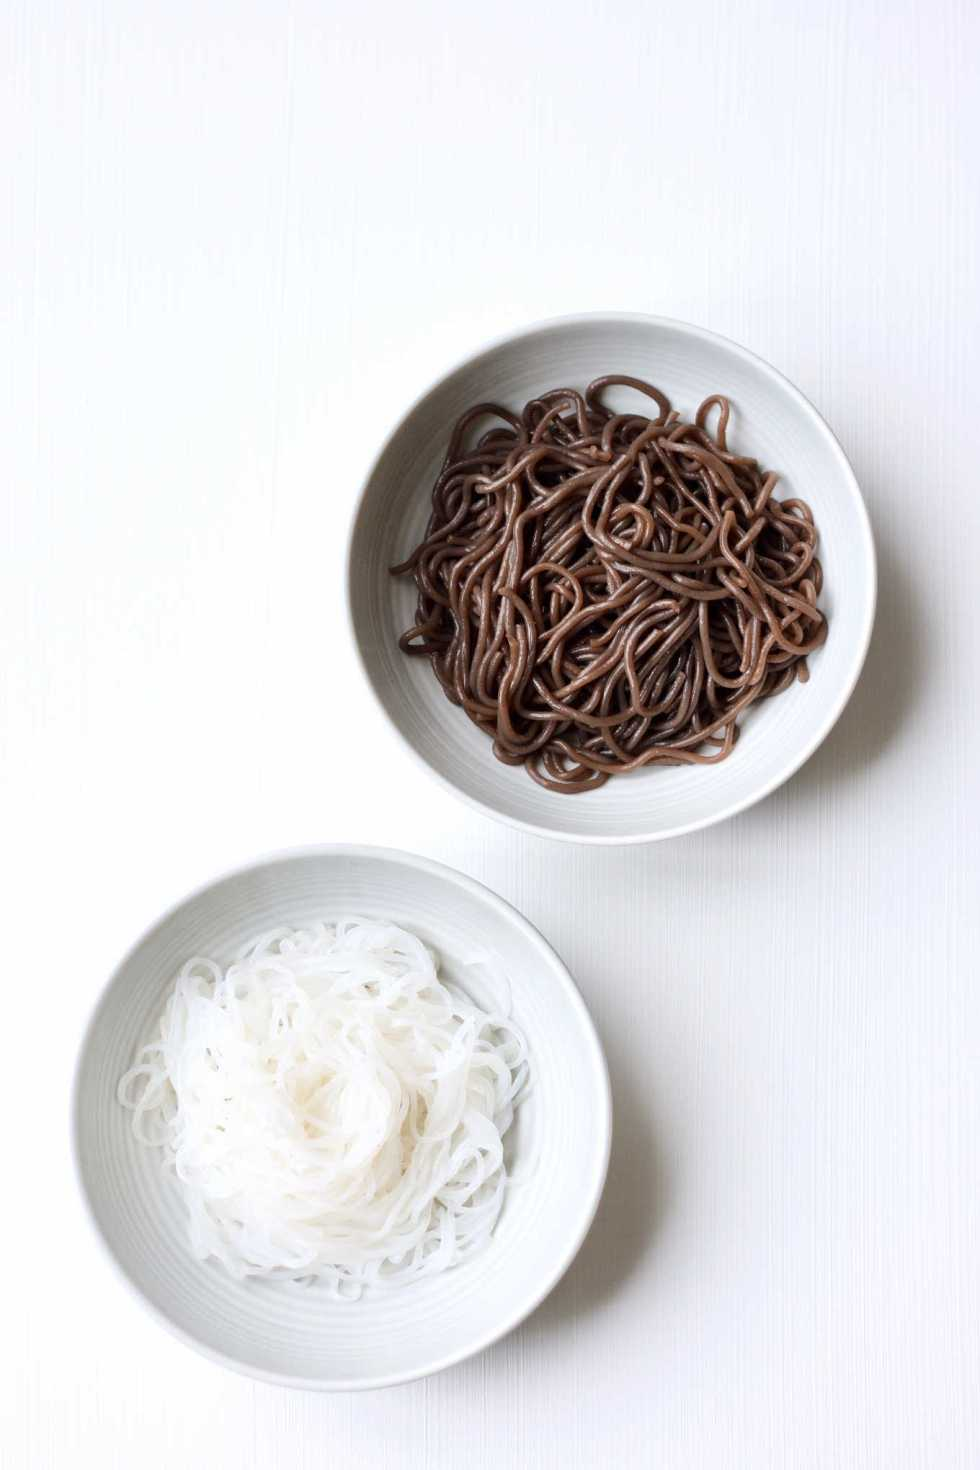 2 kinds of grain free and gluten free noodles used in Asia: shirataki noodles and wild fern root noodles.